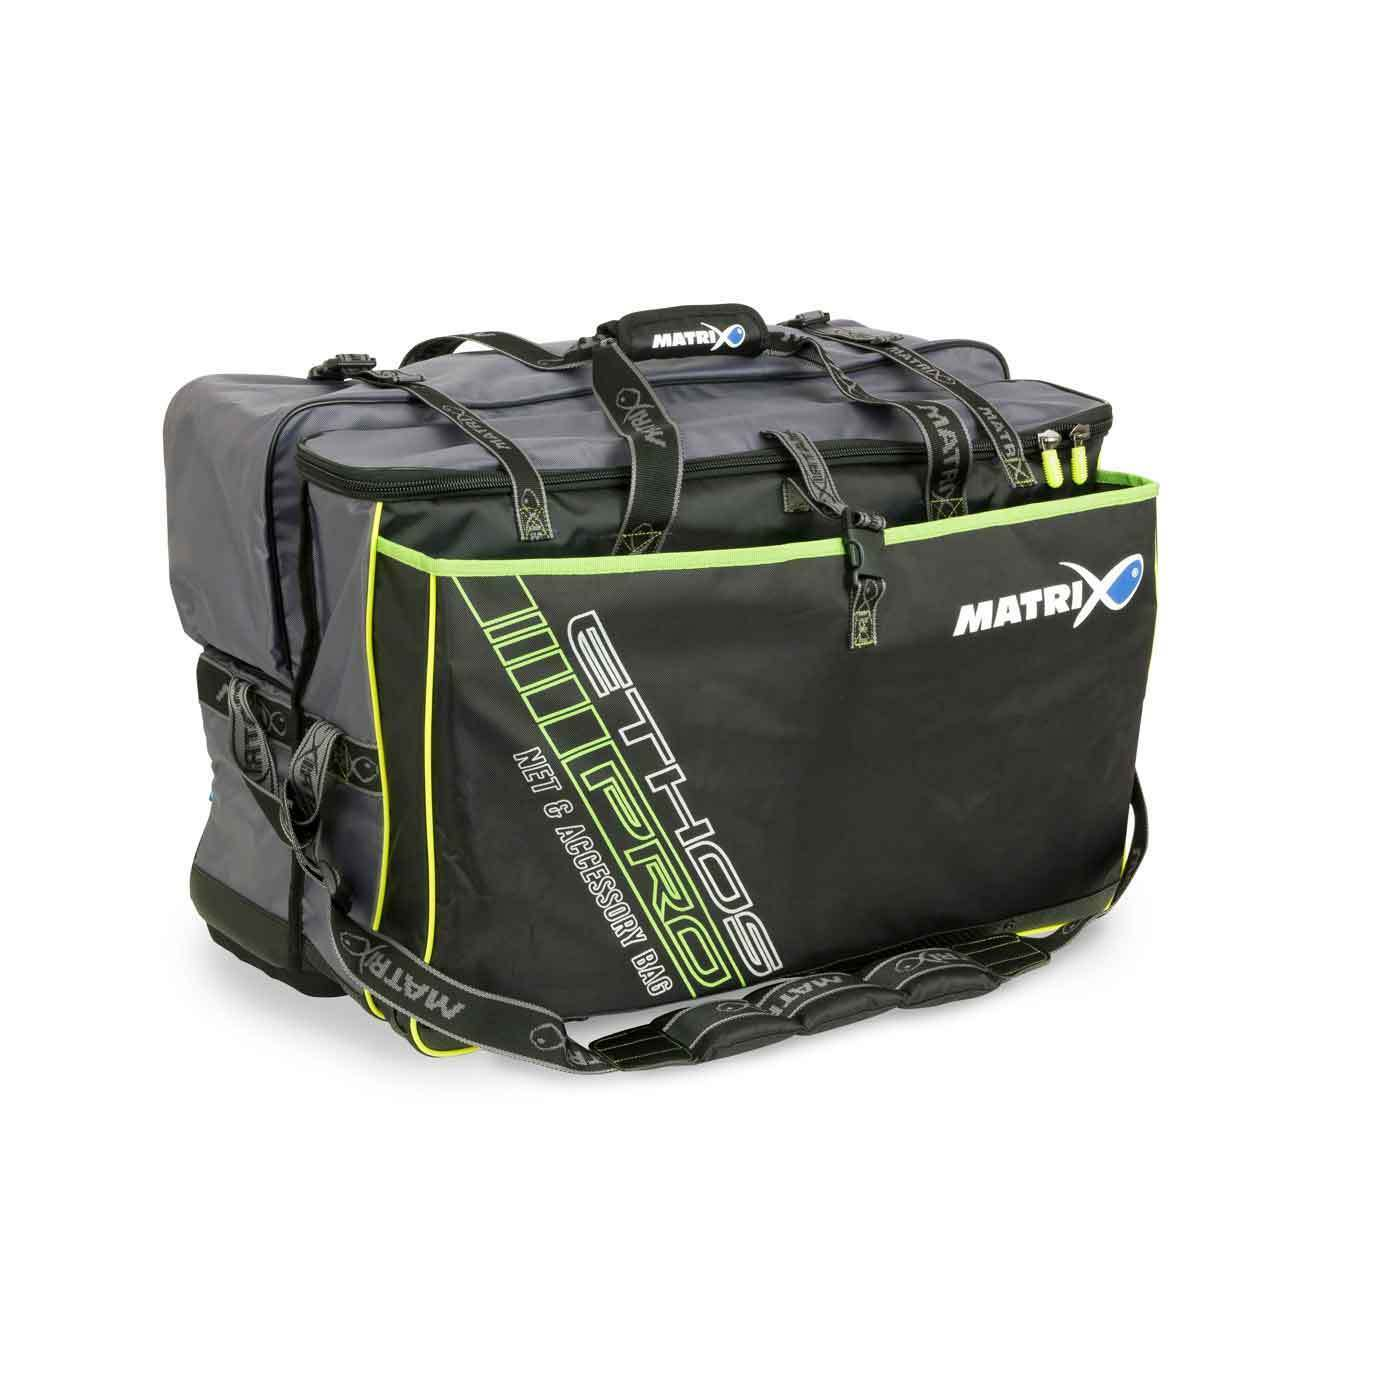 Matrix Ethos Pro Net and Accessory Bag Brand New 2017 - Free Delivery